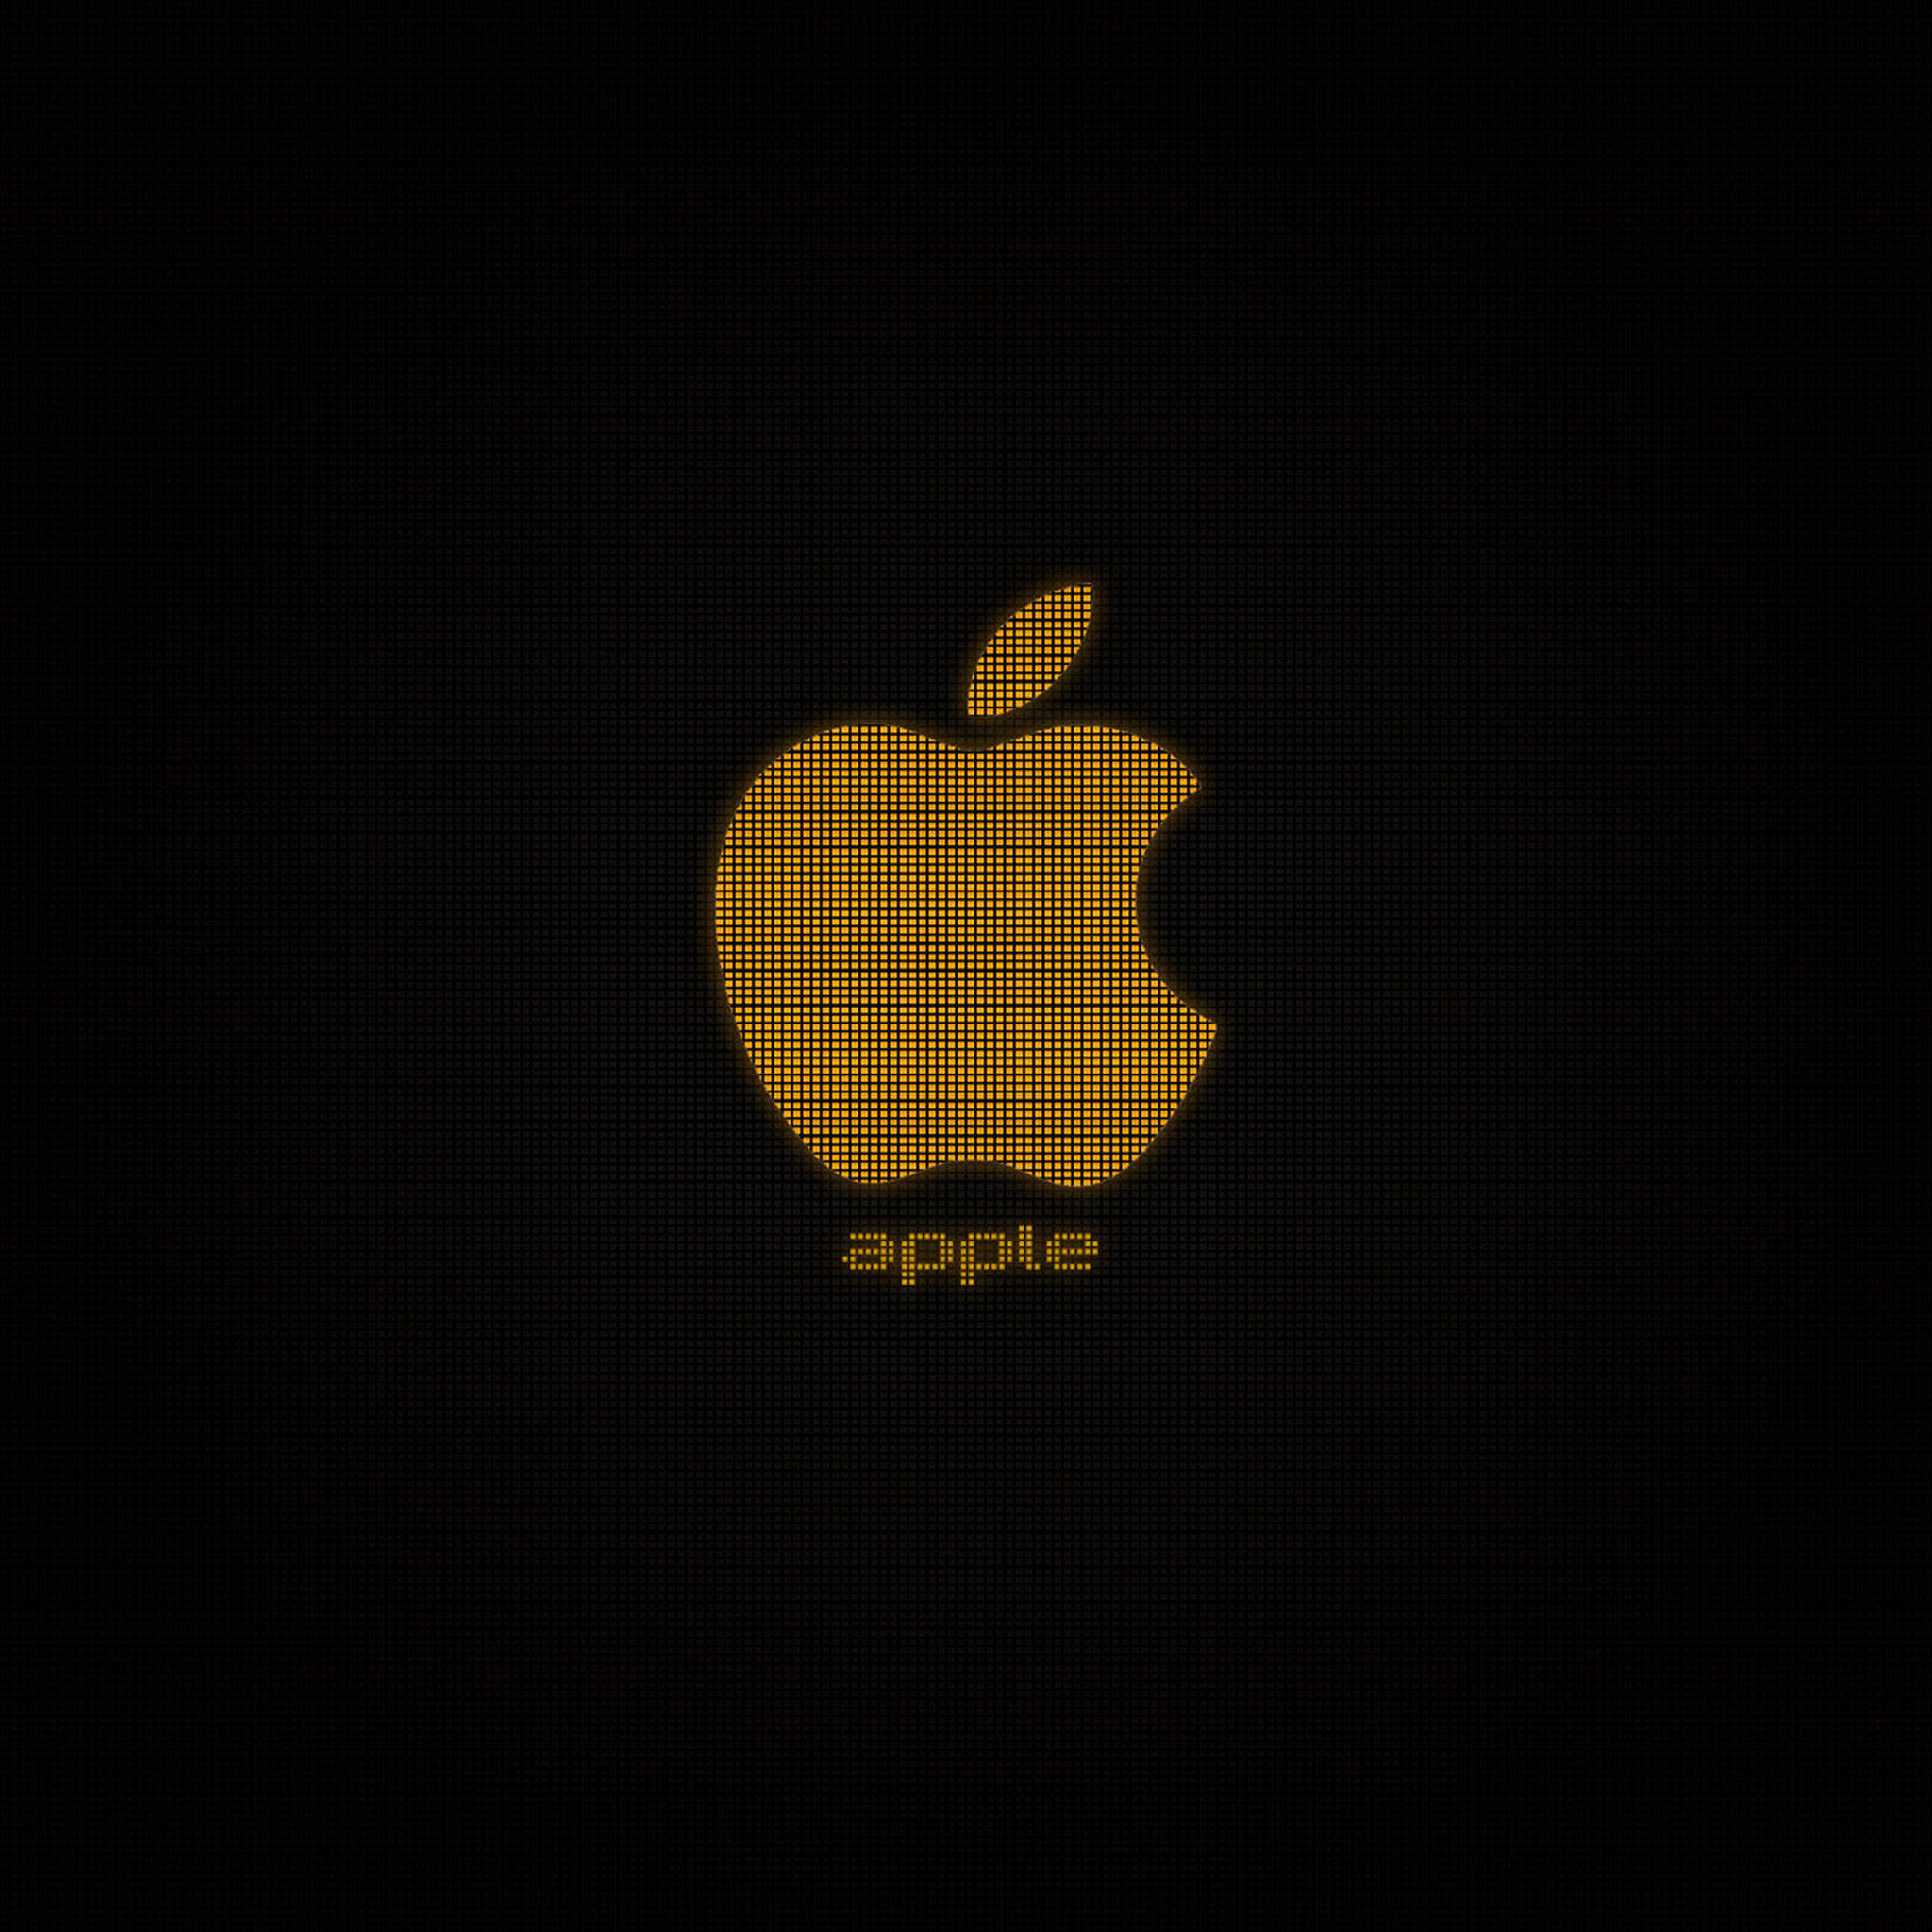 iPad Wallpapers Apple LOGO 040   Apple New iPad iPad 3 iPad 4 2048x2048